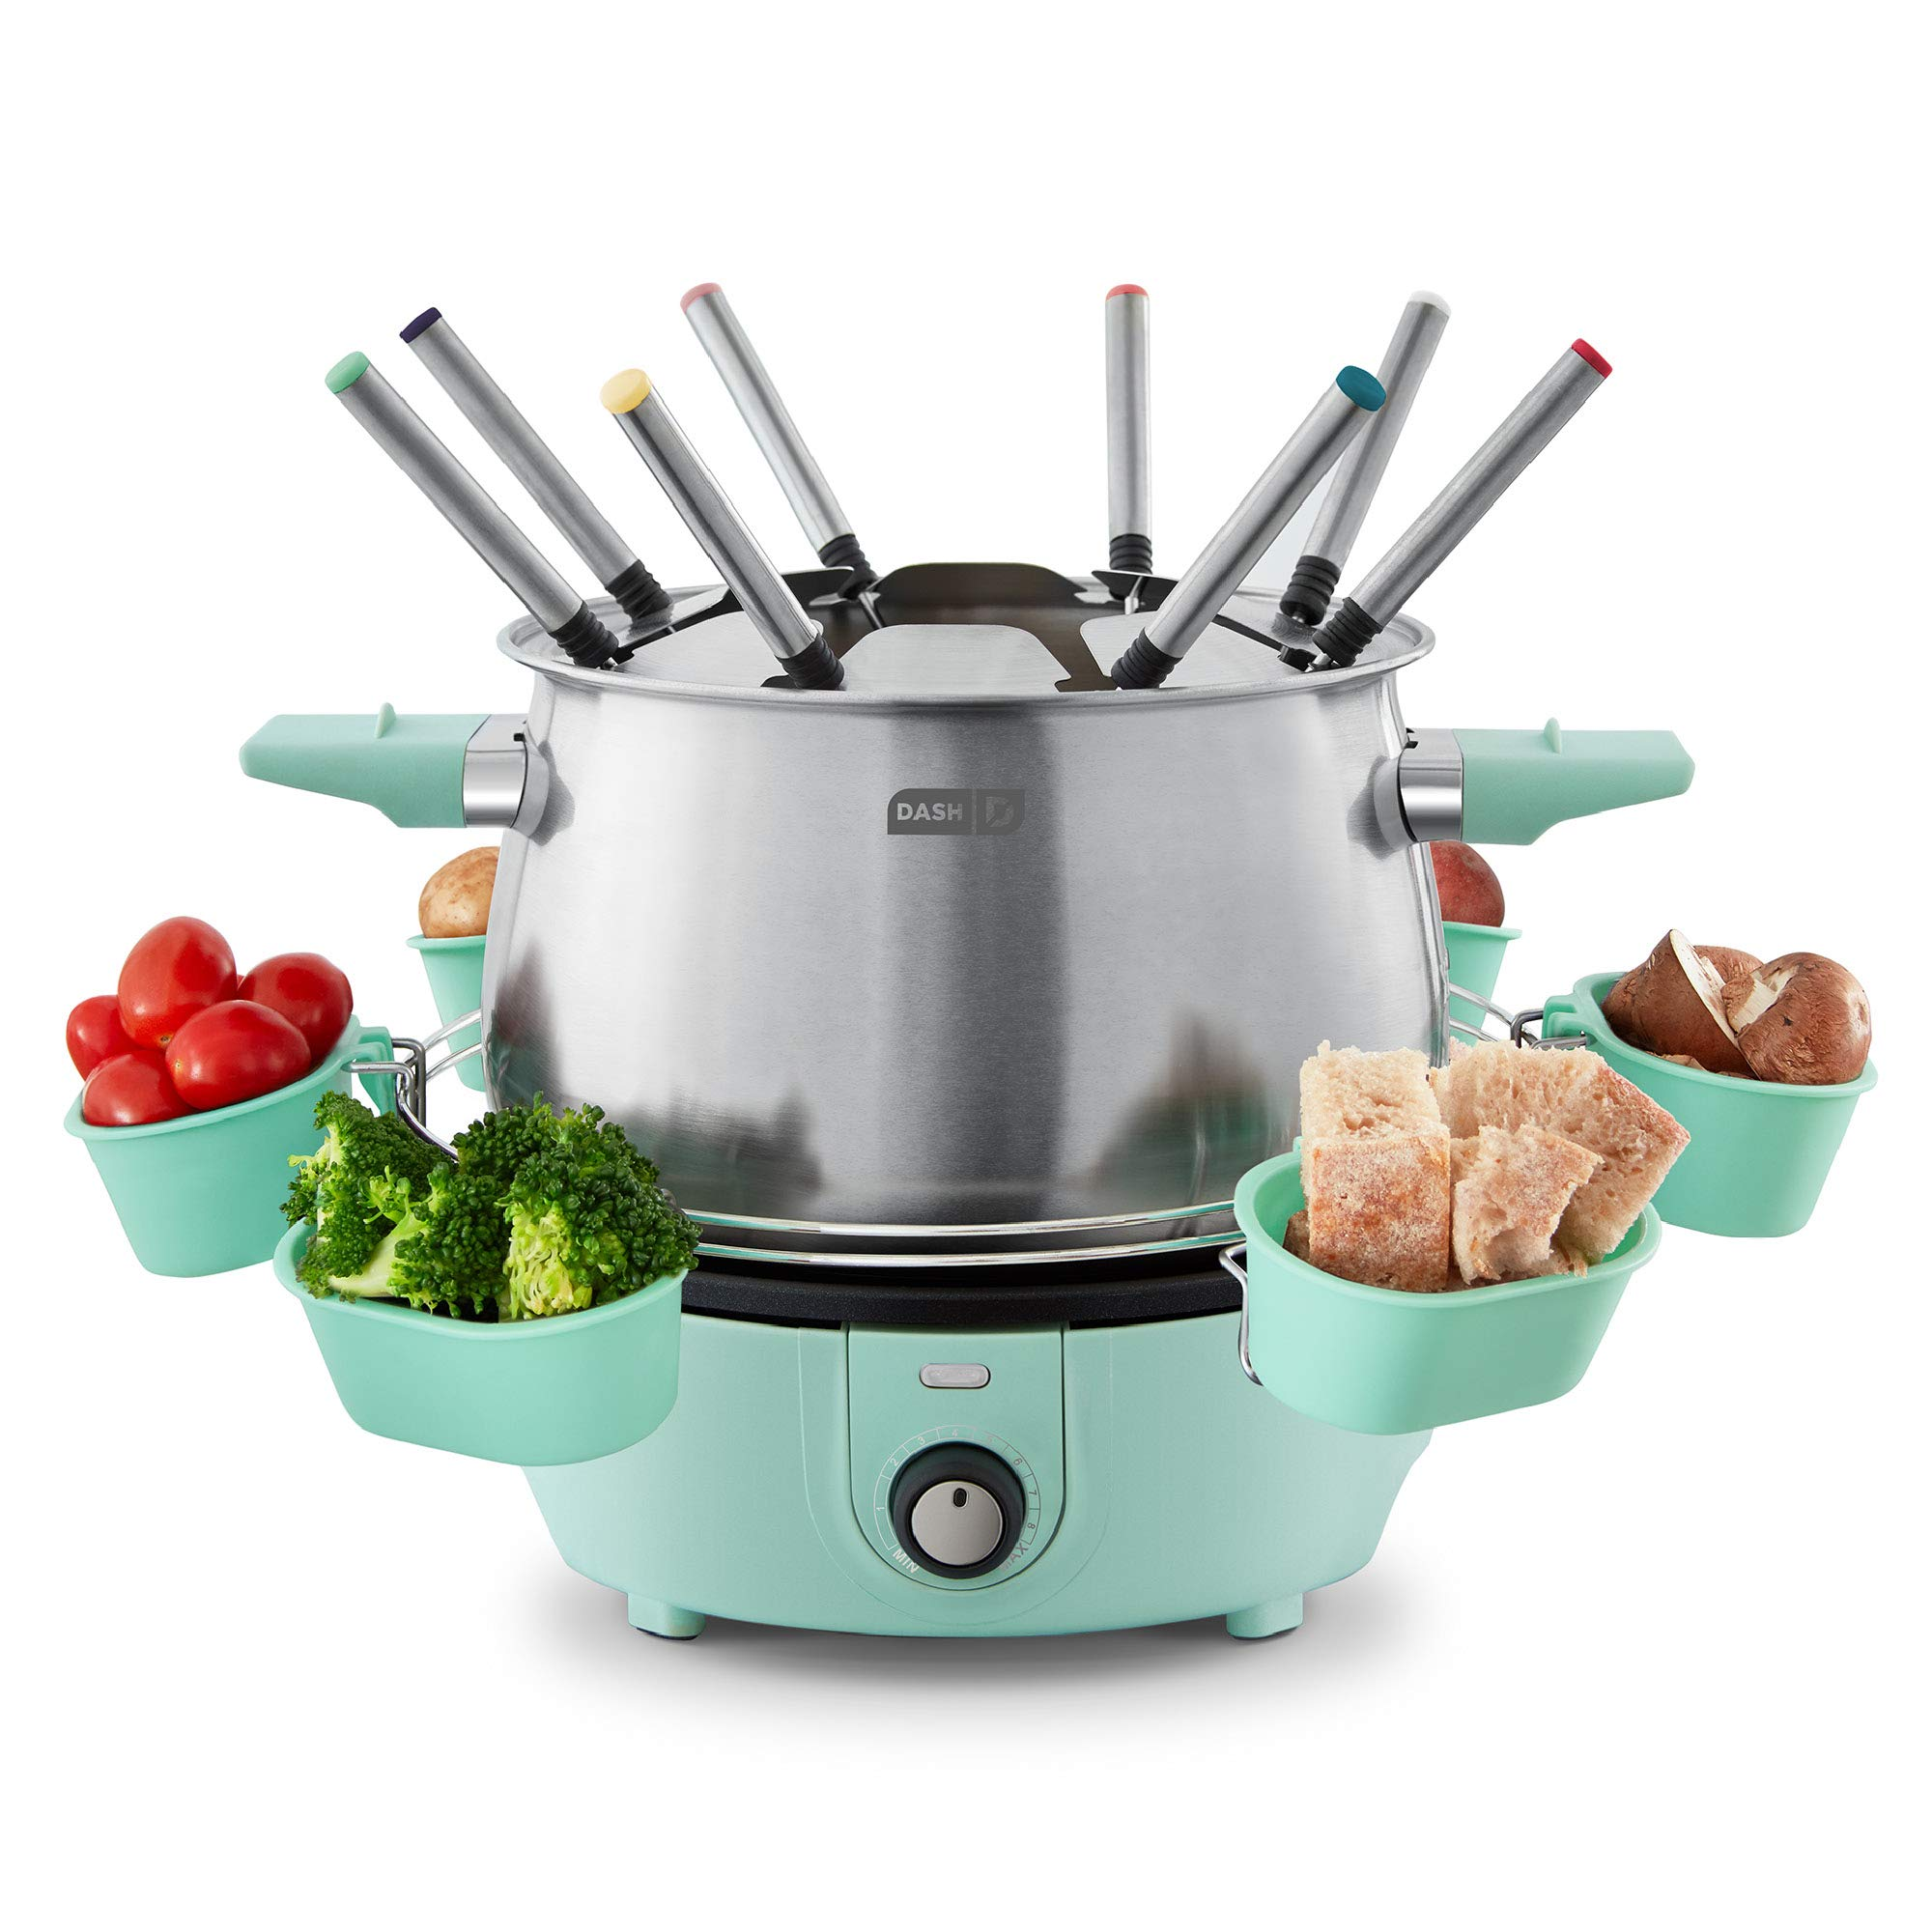 Dash DFM250GBAQ04 Deluxe Stainless Steel Fondue Maker with Temperature Control, Forks, Cups, and Rack, with Recipe Guide Included, 3-Quart, Non-Stick, Aqua